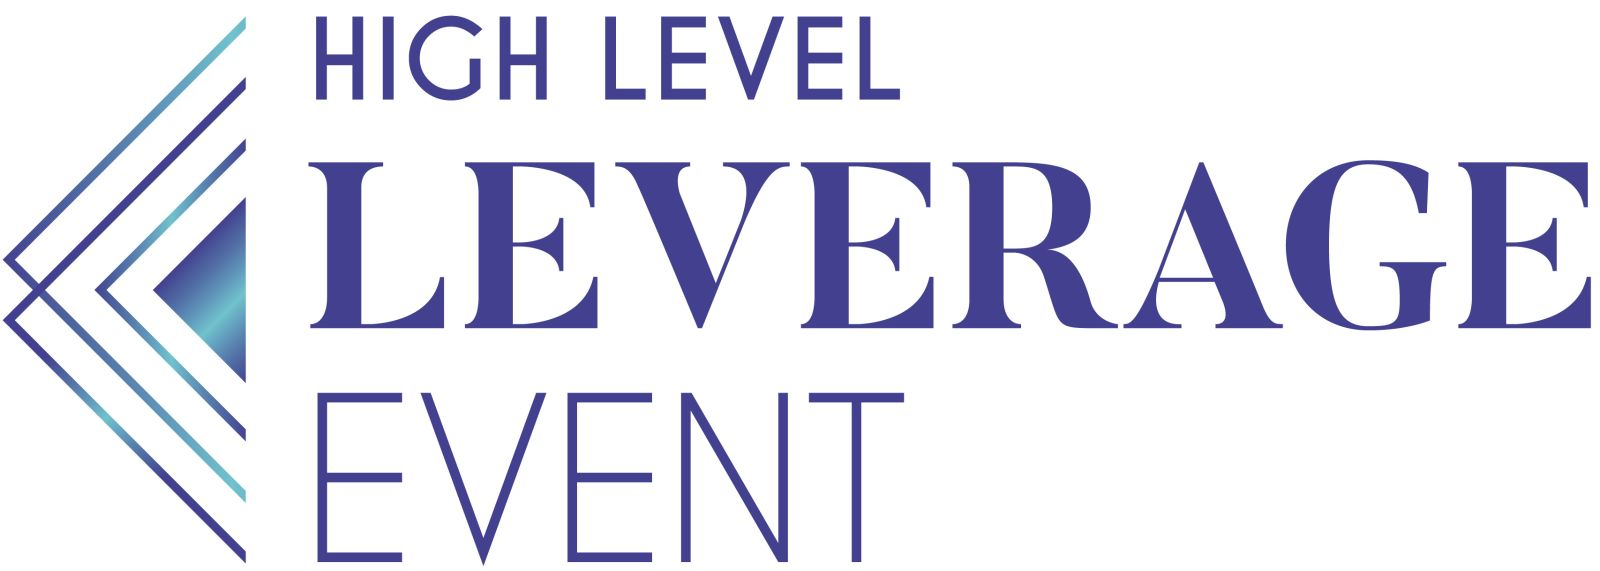 High Level Leverage Event (23 en 24 november 2017) regular ticket-3 termijnen